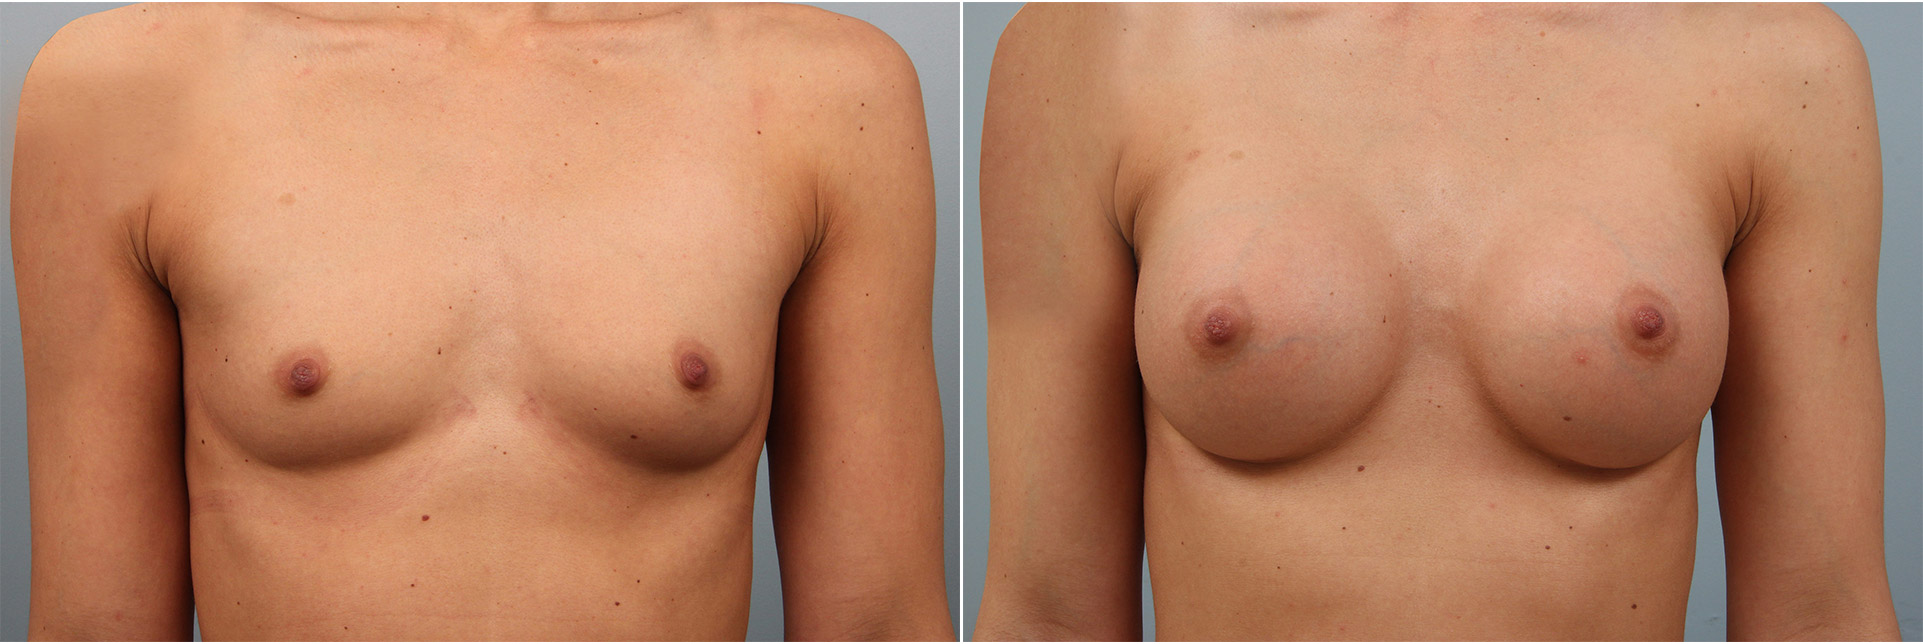 Closeup of a female before and after breast augmentation surgery, which corrected asymmetrical breasts